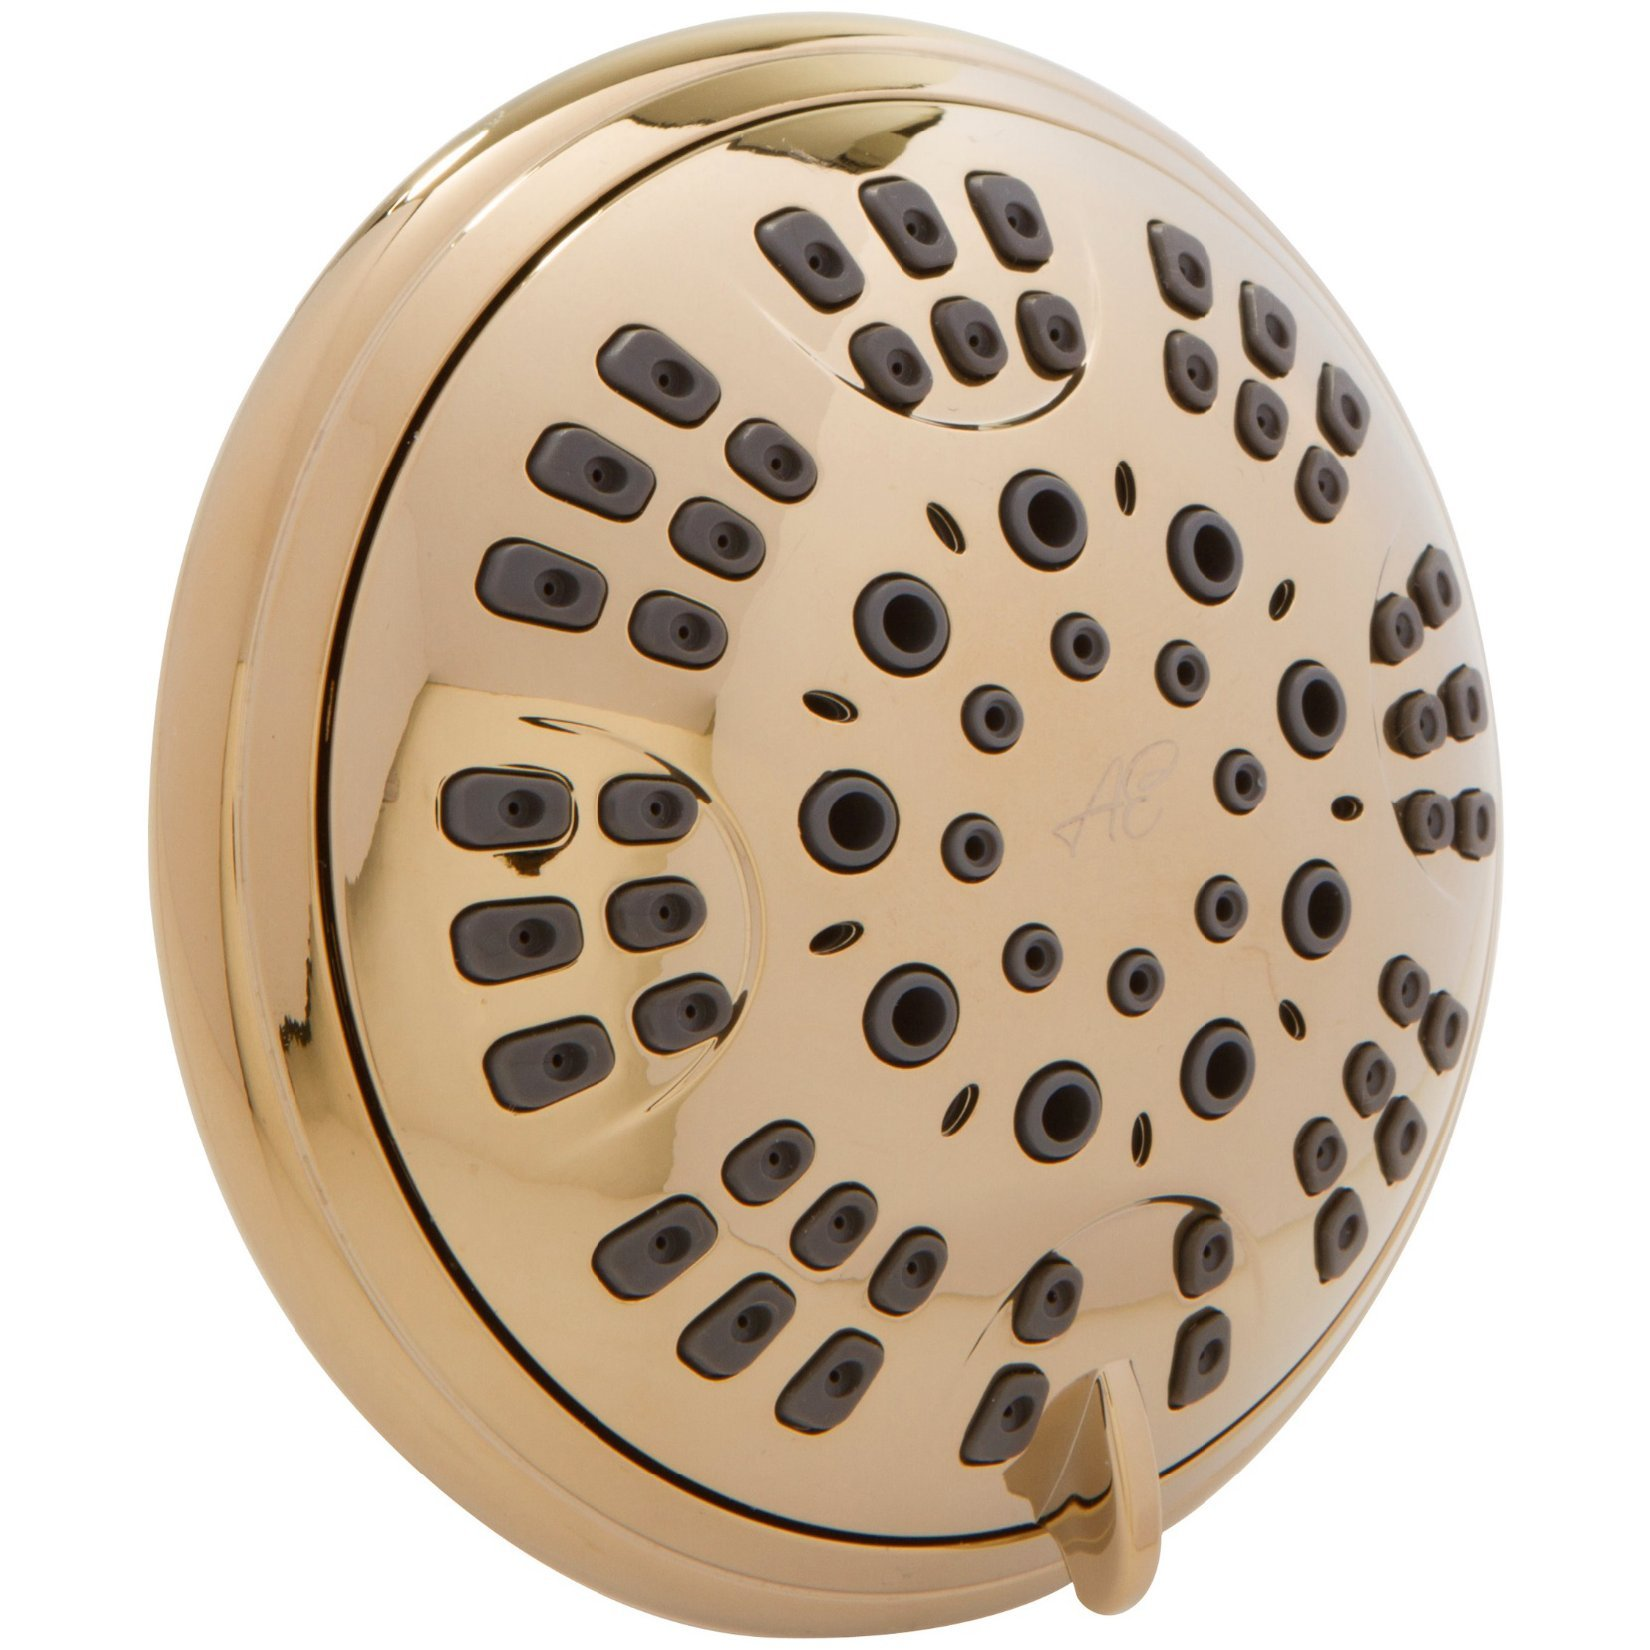 6 Function Luxury Shower Head - Amazing High Pressure, Wall Mount, Adjustable Showerhead - Indoor And Outdoor Modern Bath Spa Fixture - Aqua Elegante - Polished Brass